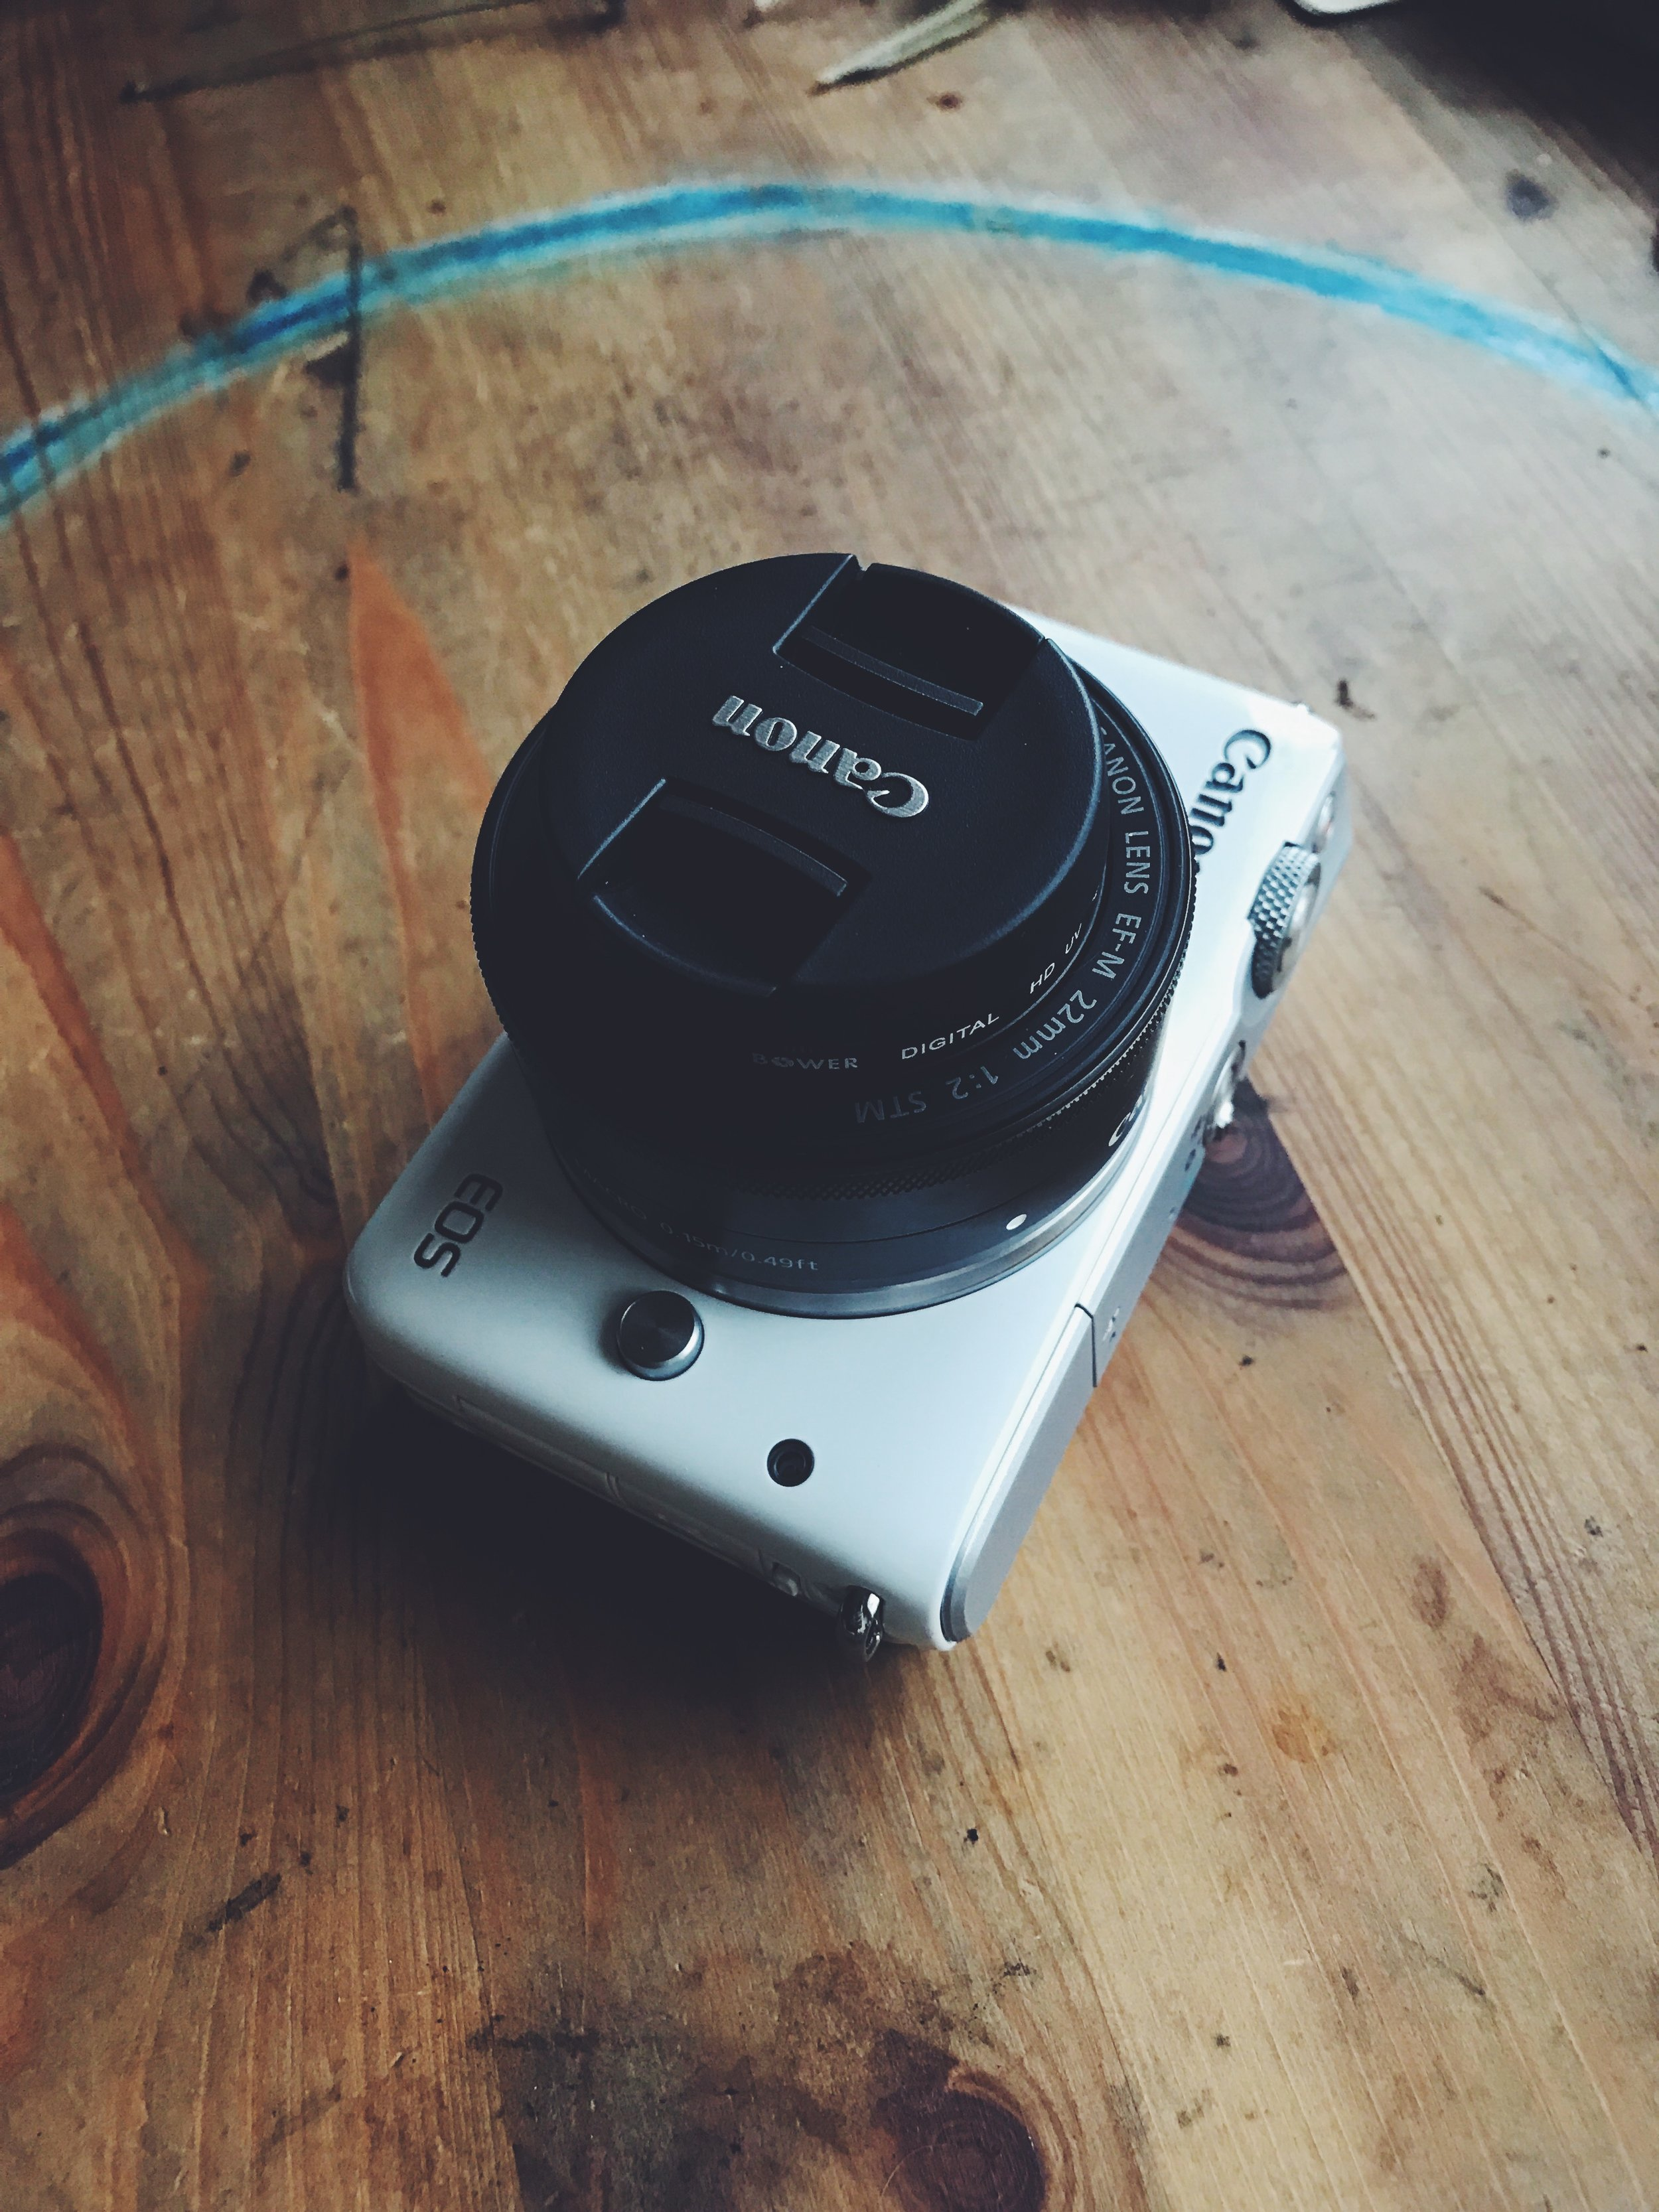 The Canon Eos M10 with a 22mm lens.